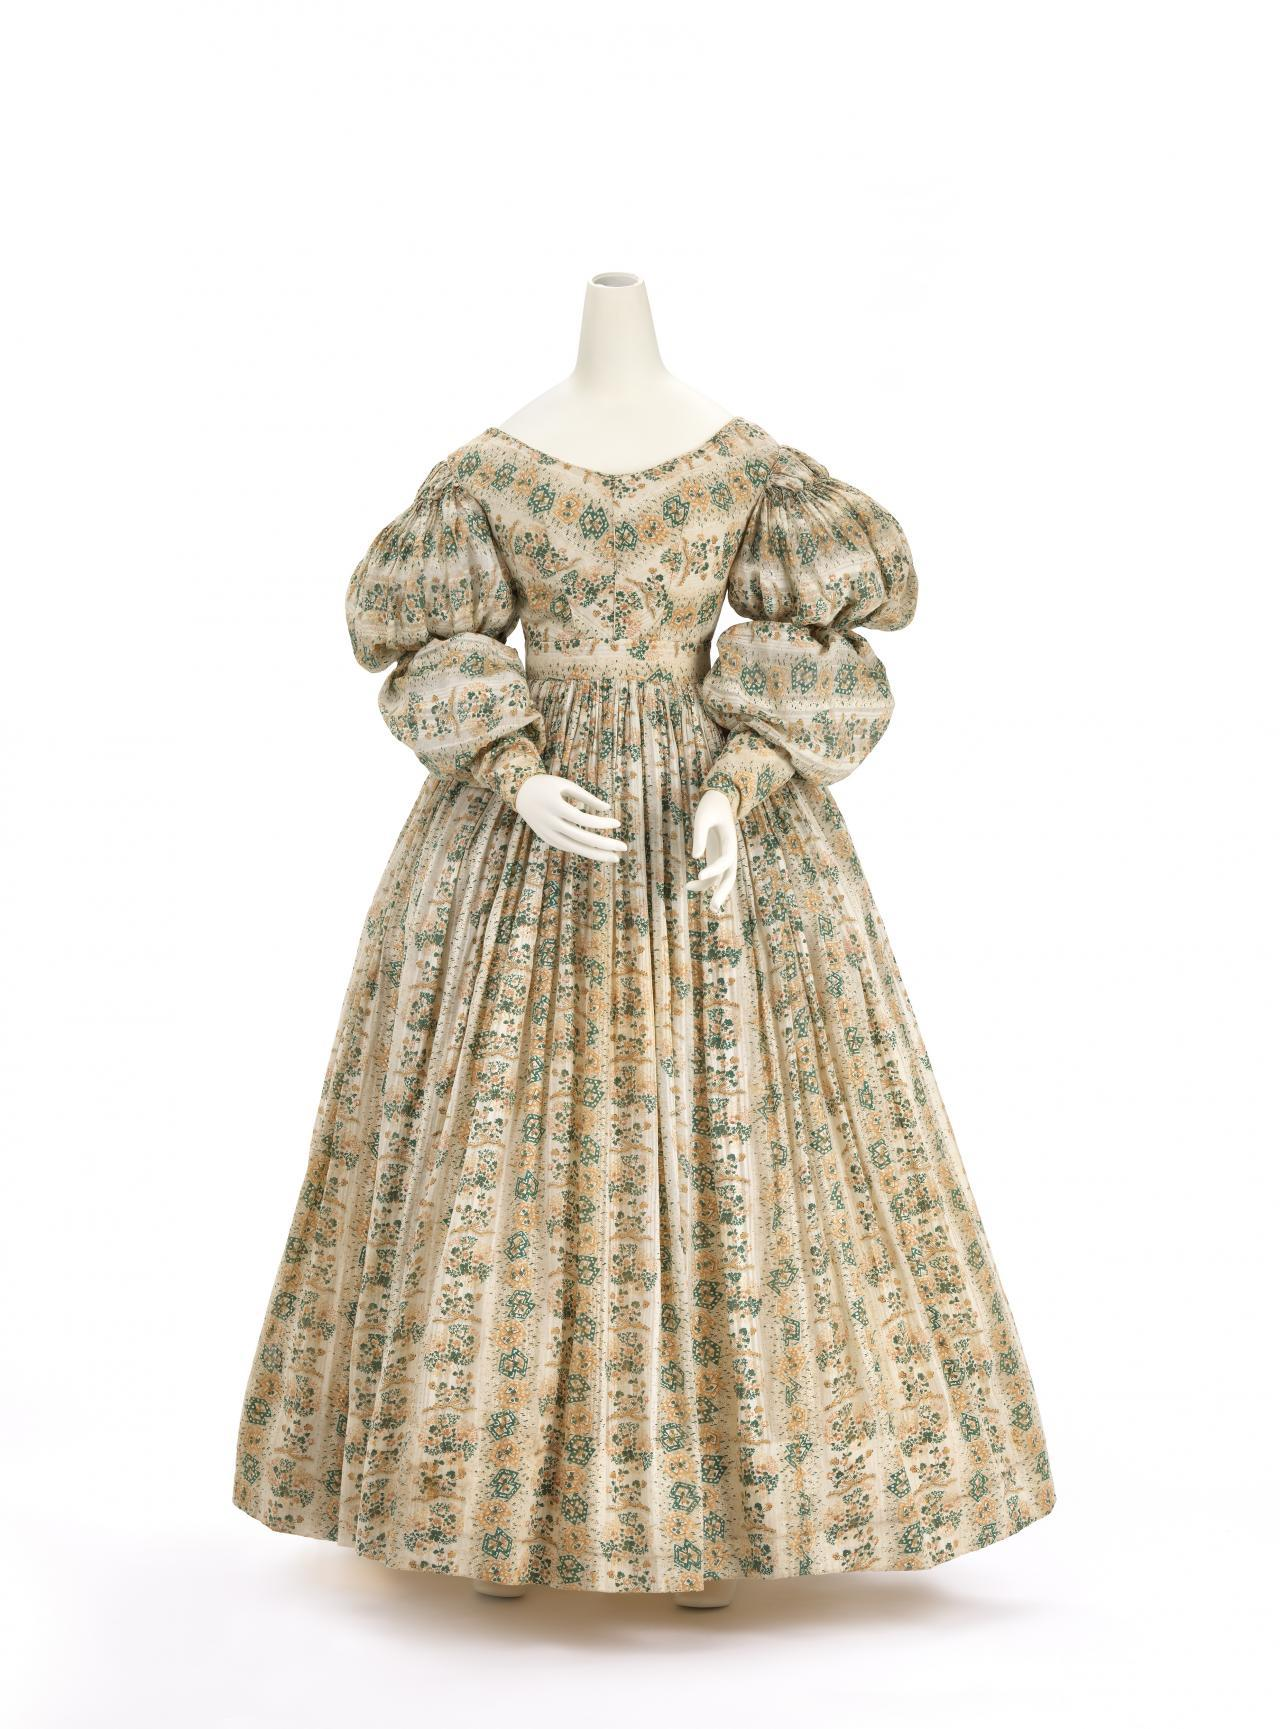 Morning Dress, 1834-1836, National Gallery of Victoria